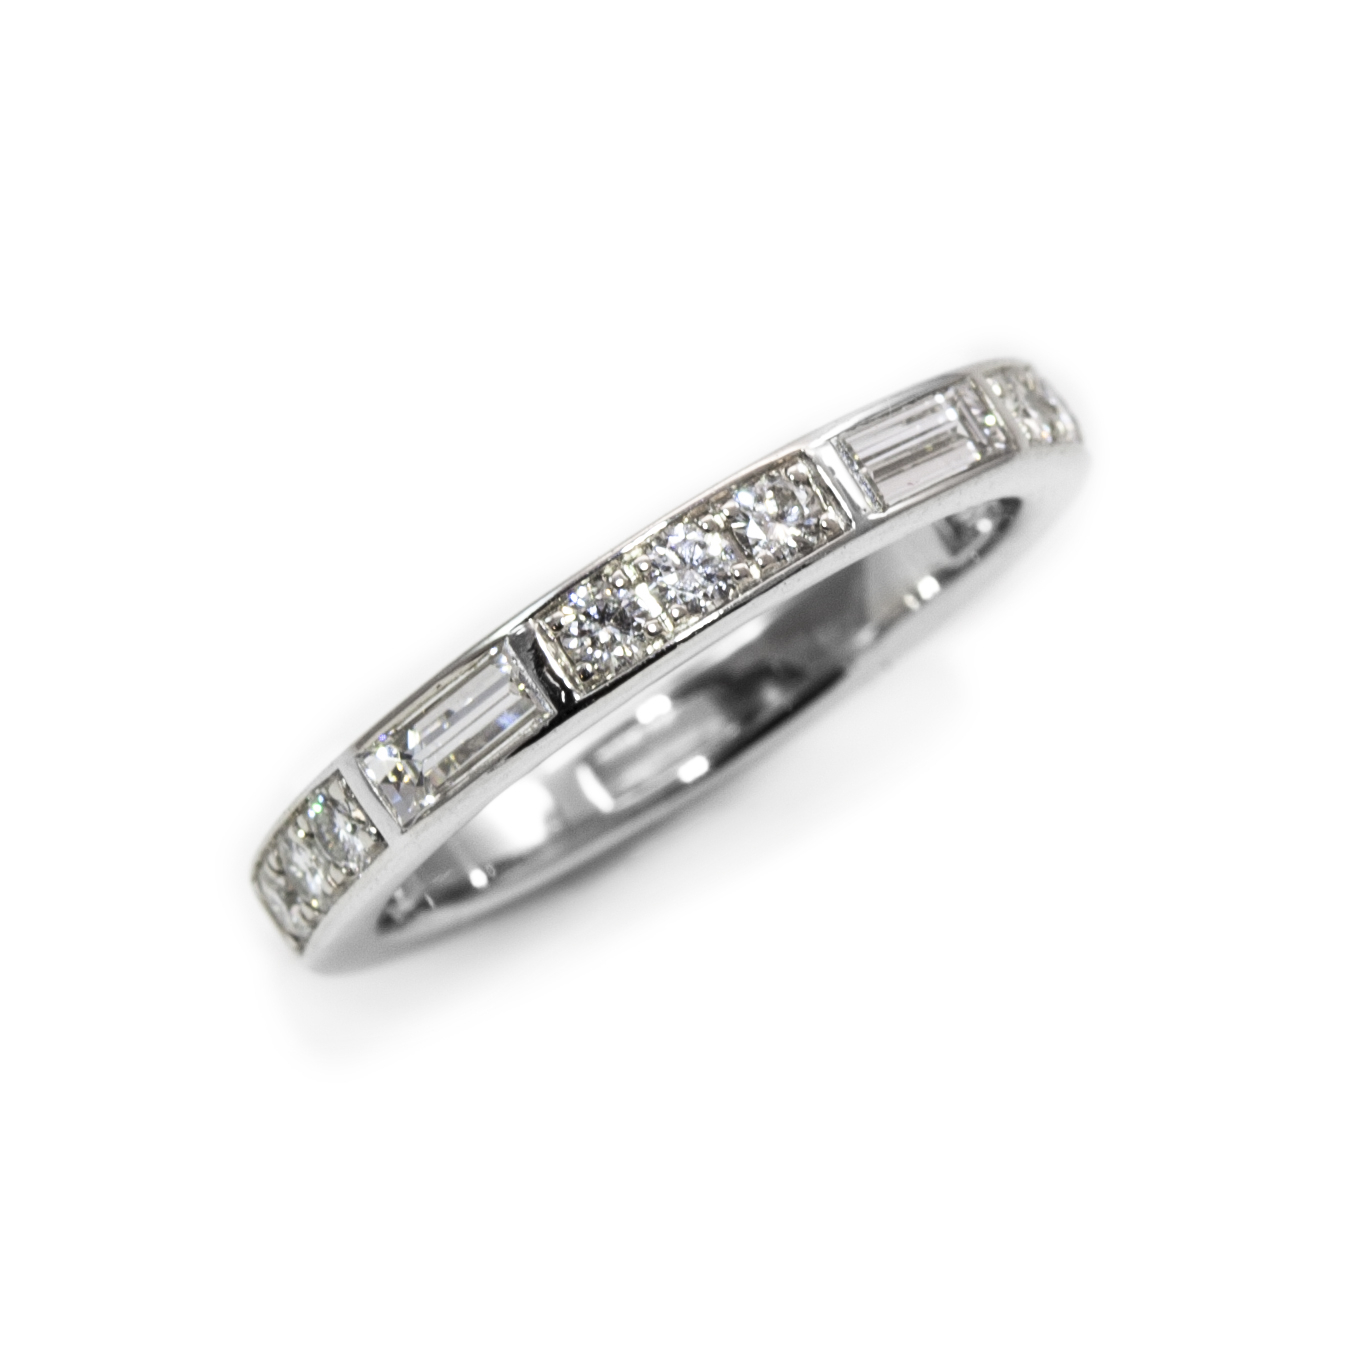 Alternating Baguette And Round Diamond Band — Oliver Smith Inside Current Baguette And Round Diamond Alternating Anniversary Bands In White Gold (View 9 of 25)